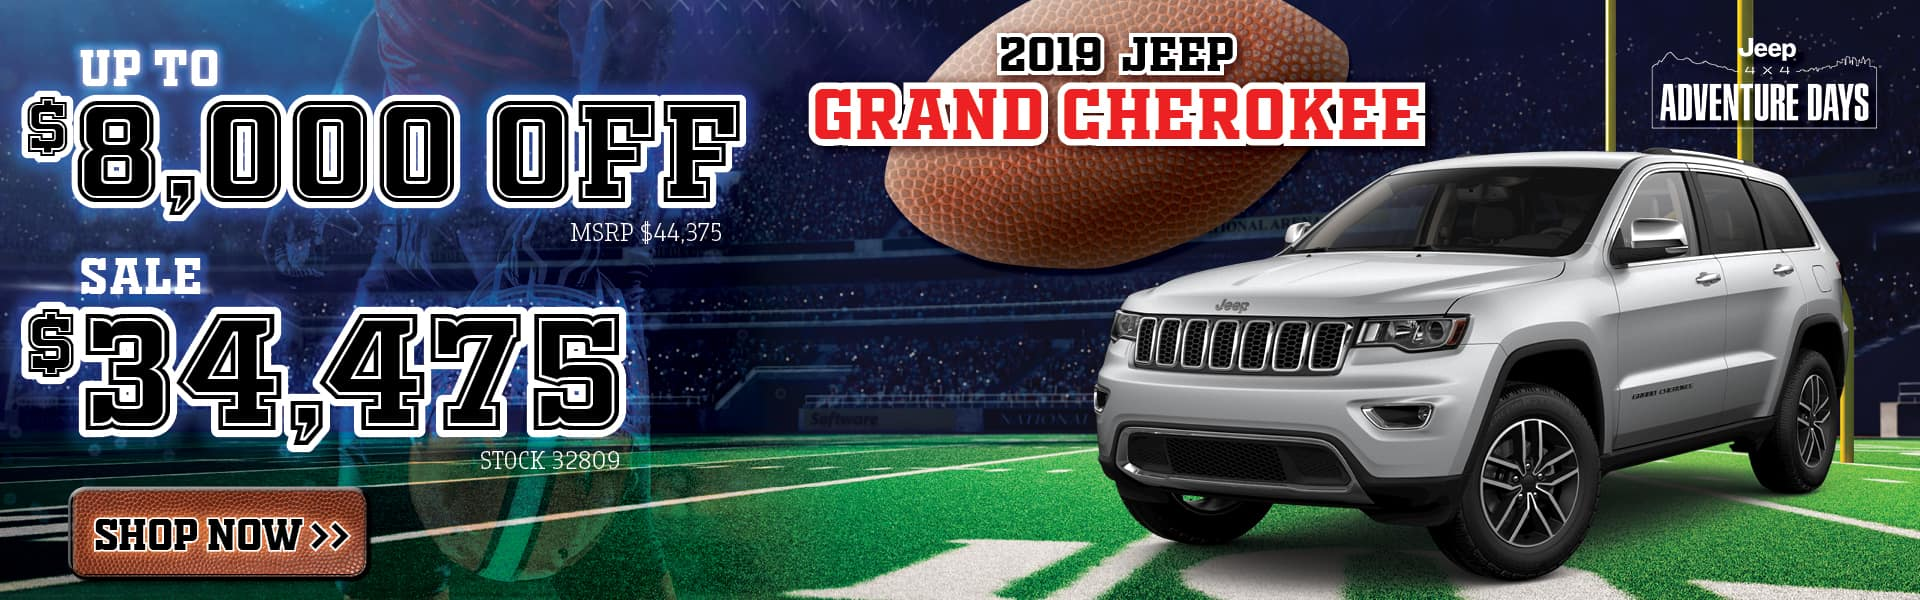 2019 Jeep Grand Cherokee For Sale in Atlanta, Georgia